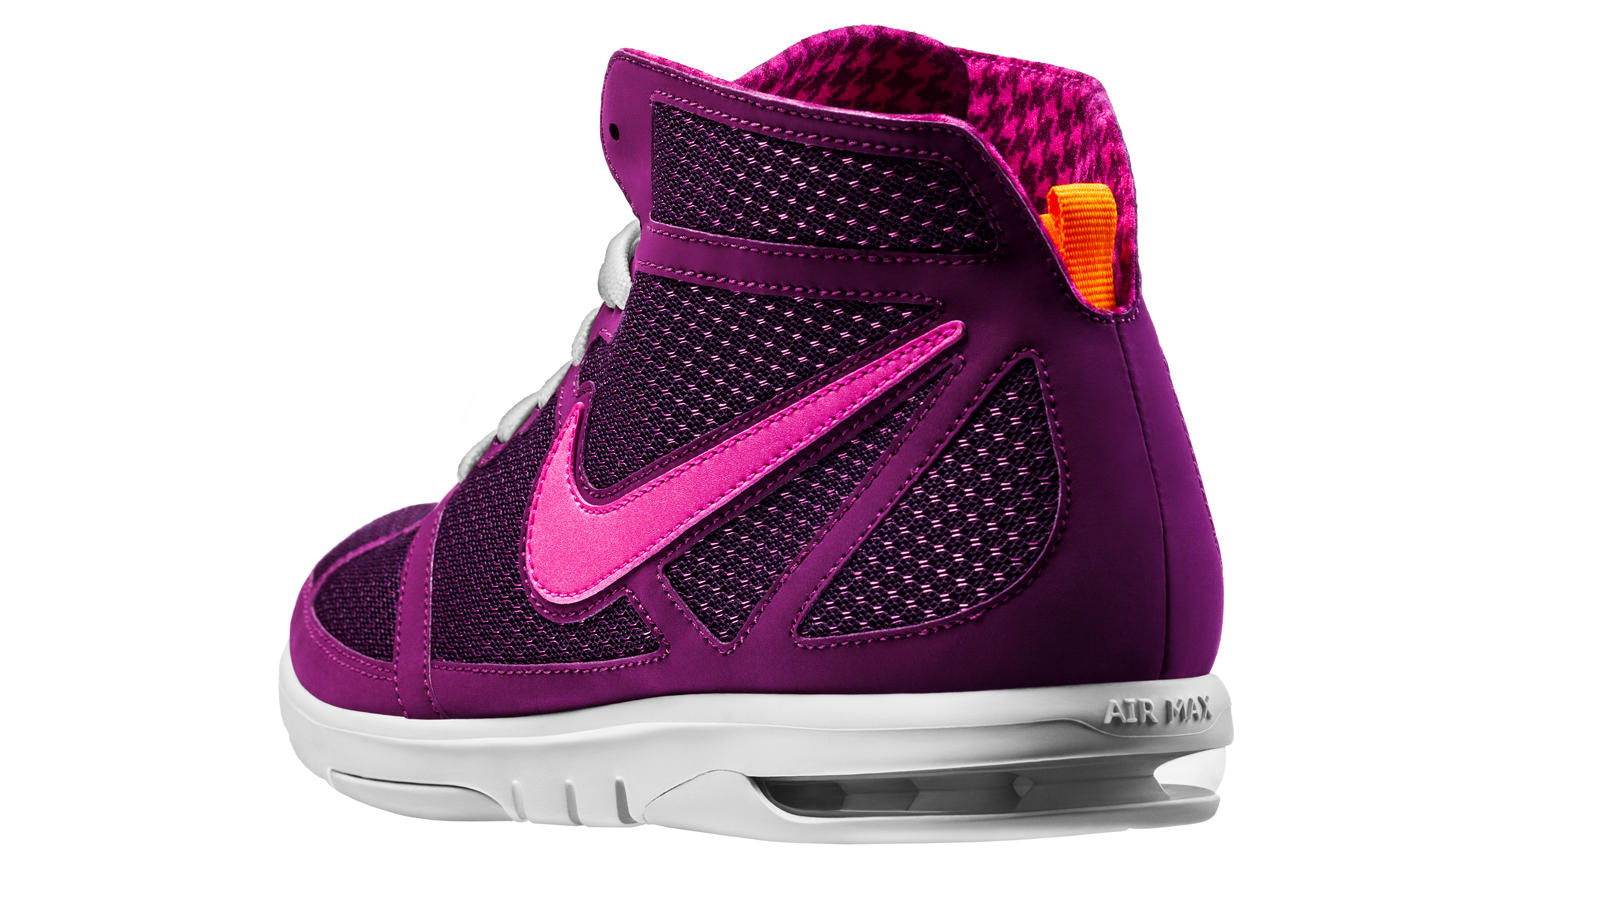 Nike_Air_Max_S2S_Mid_2